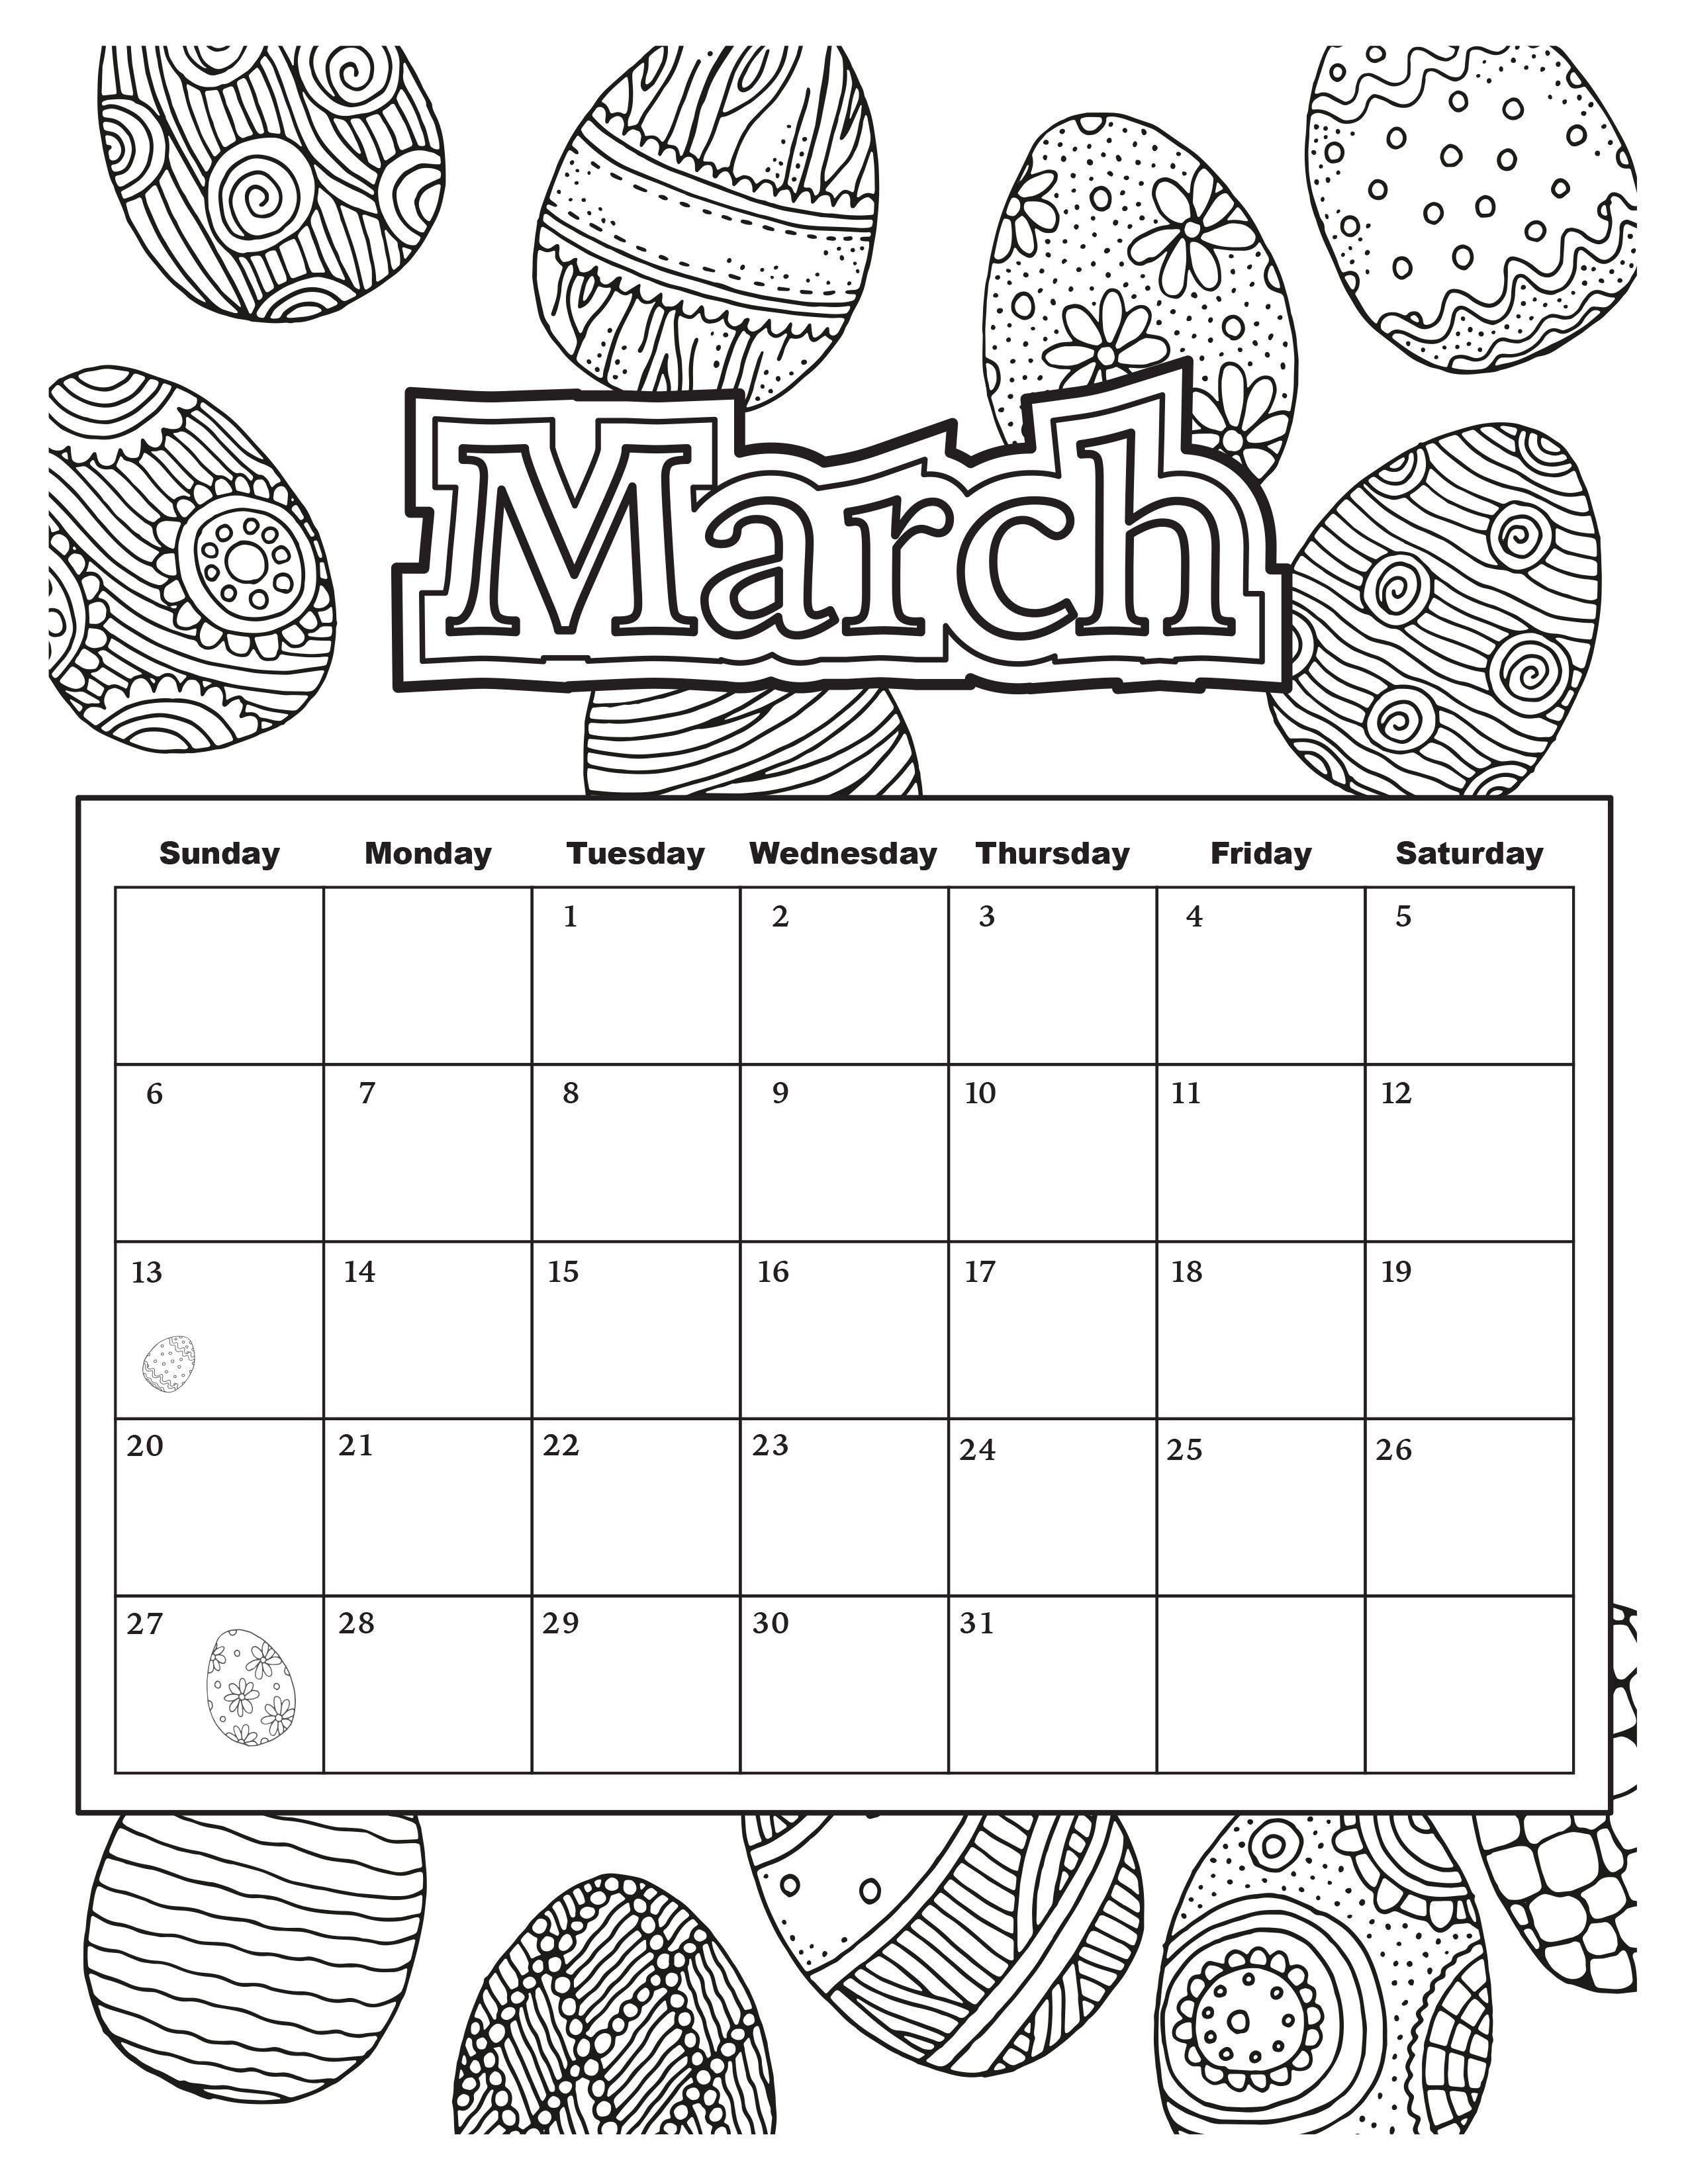 March Calendar Coloring Pages For Adults Pinterest March